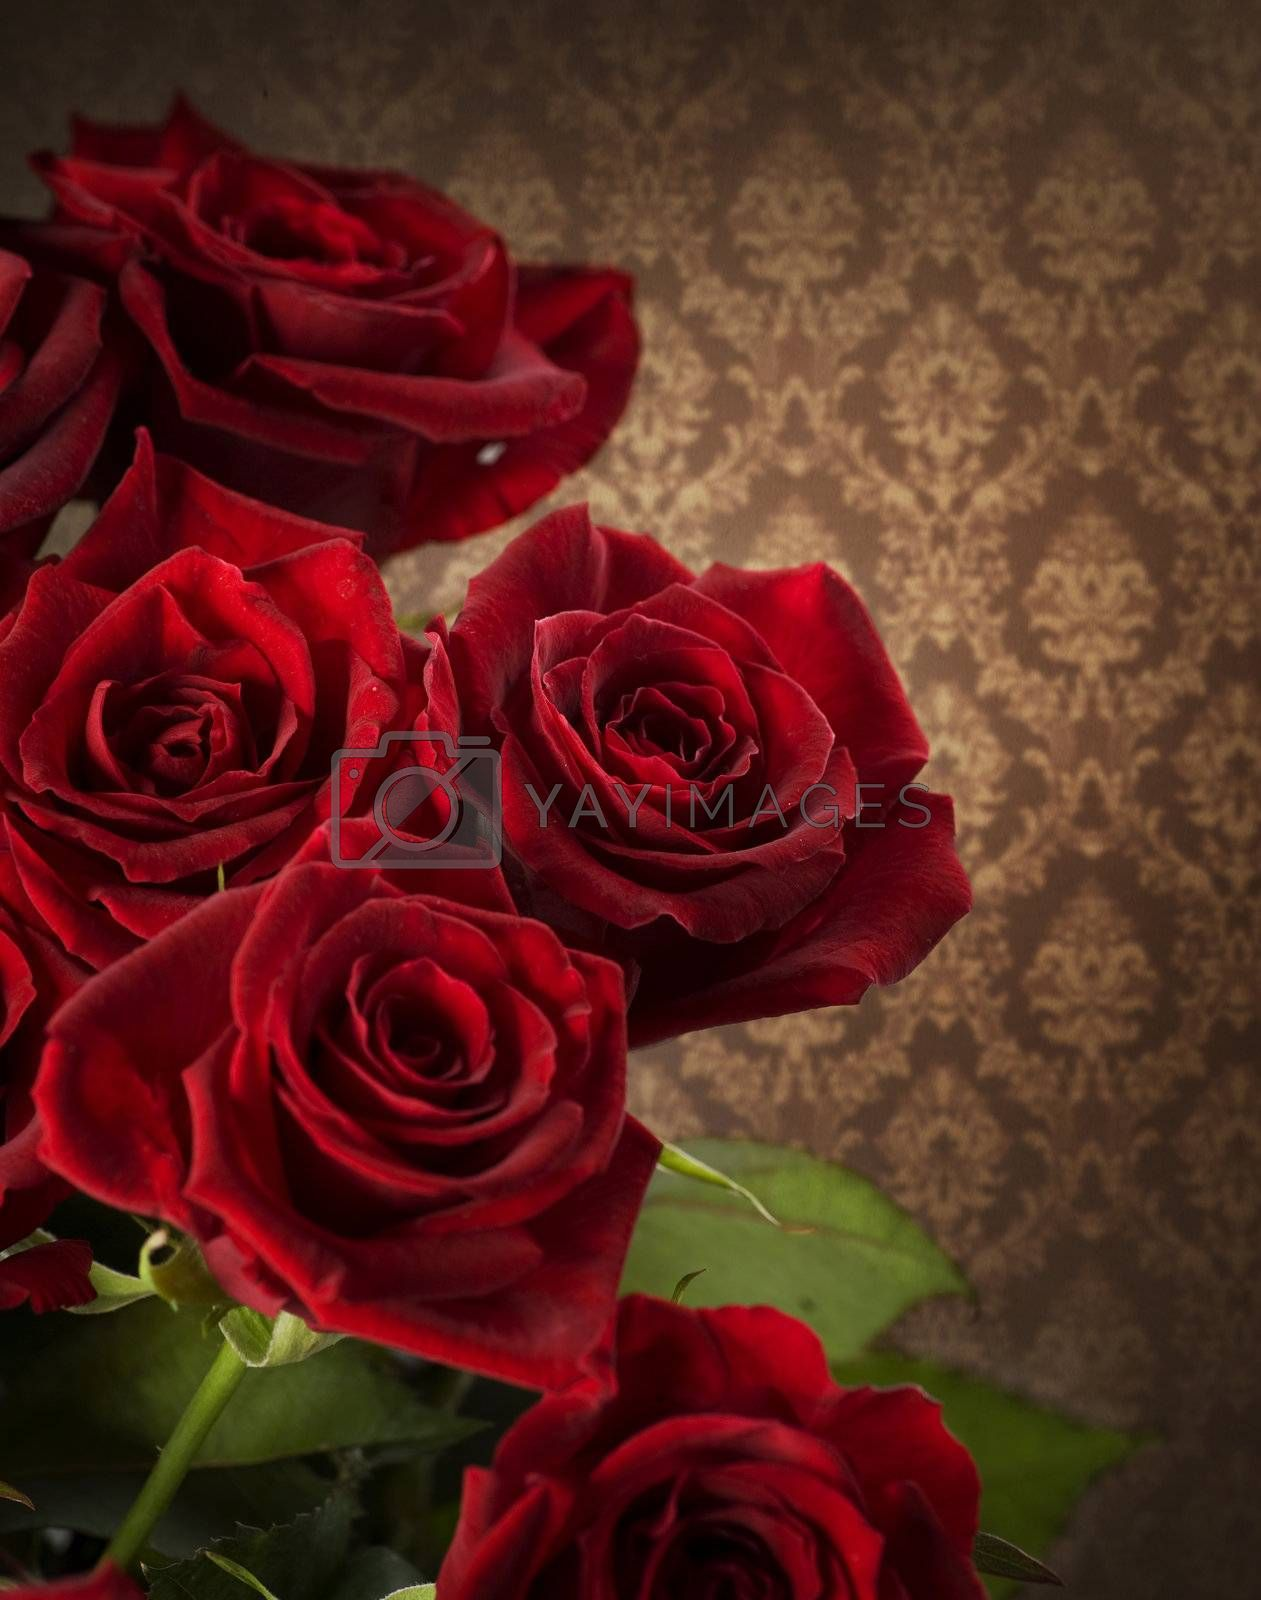 Red Roses Bouquet. Vintage Styled by Subbotina Anna